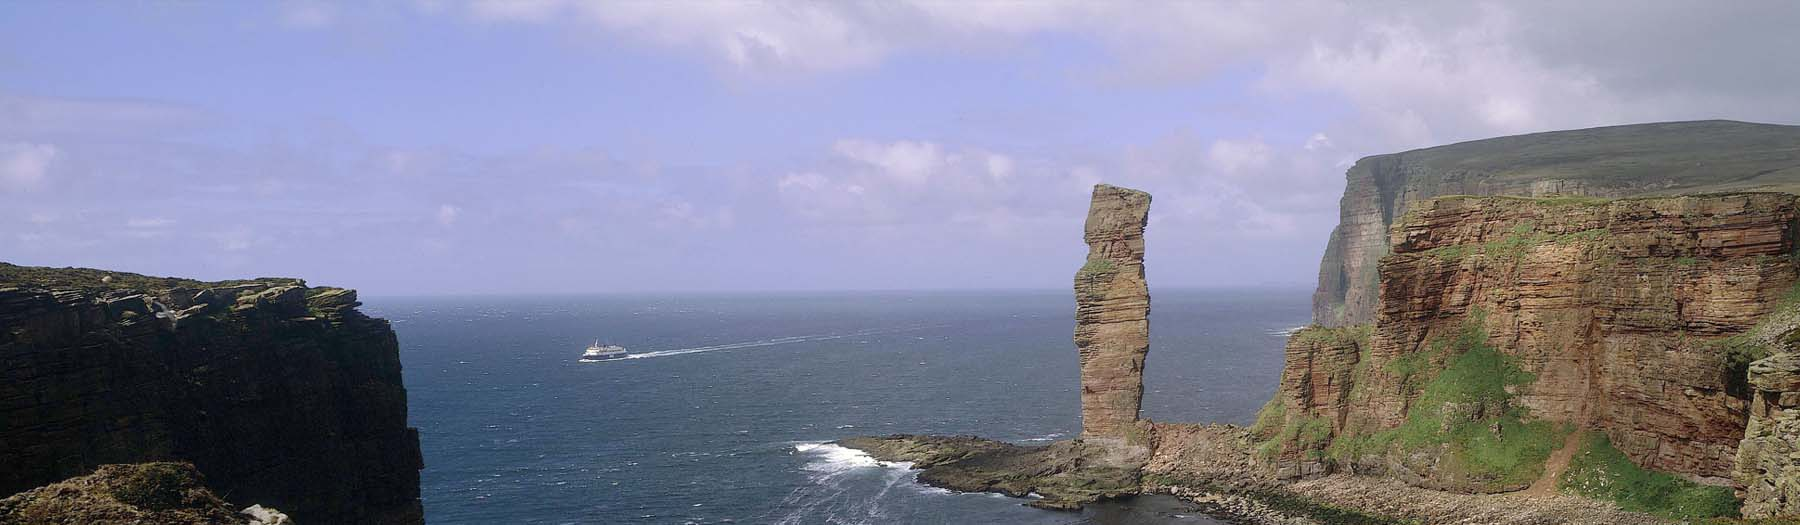 Image: Old Man of Hoy. Credit: Image used with permission from VisitScotland and Scottish Viewpoint.